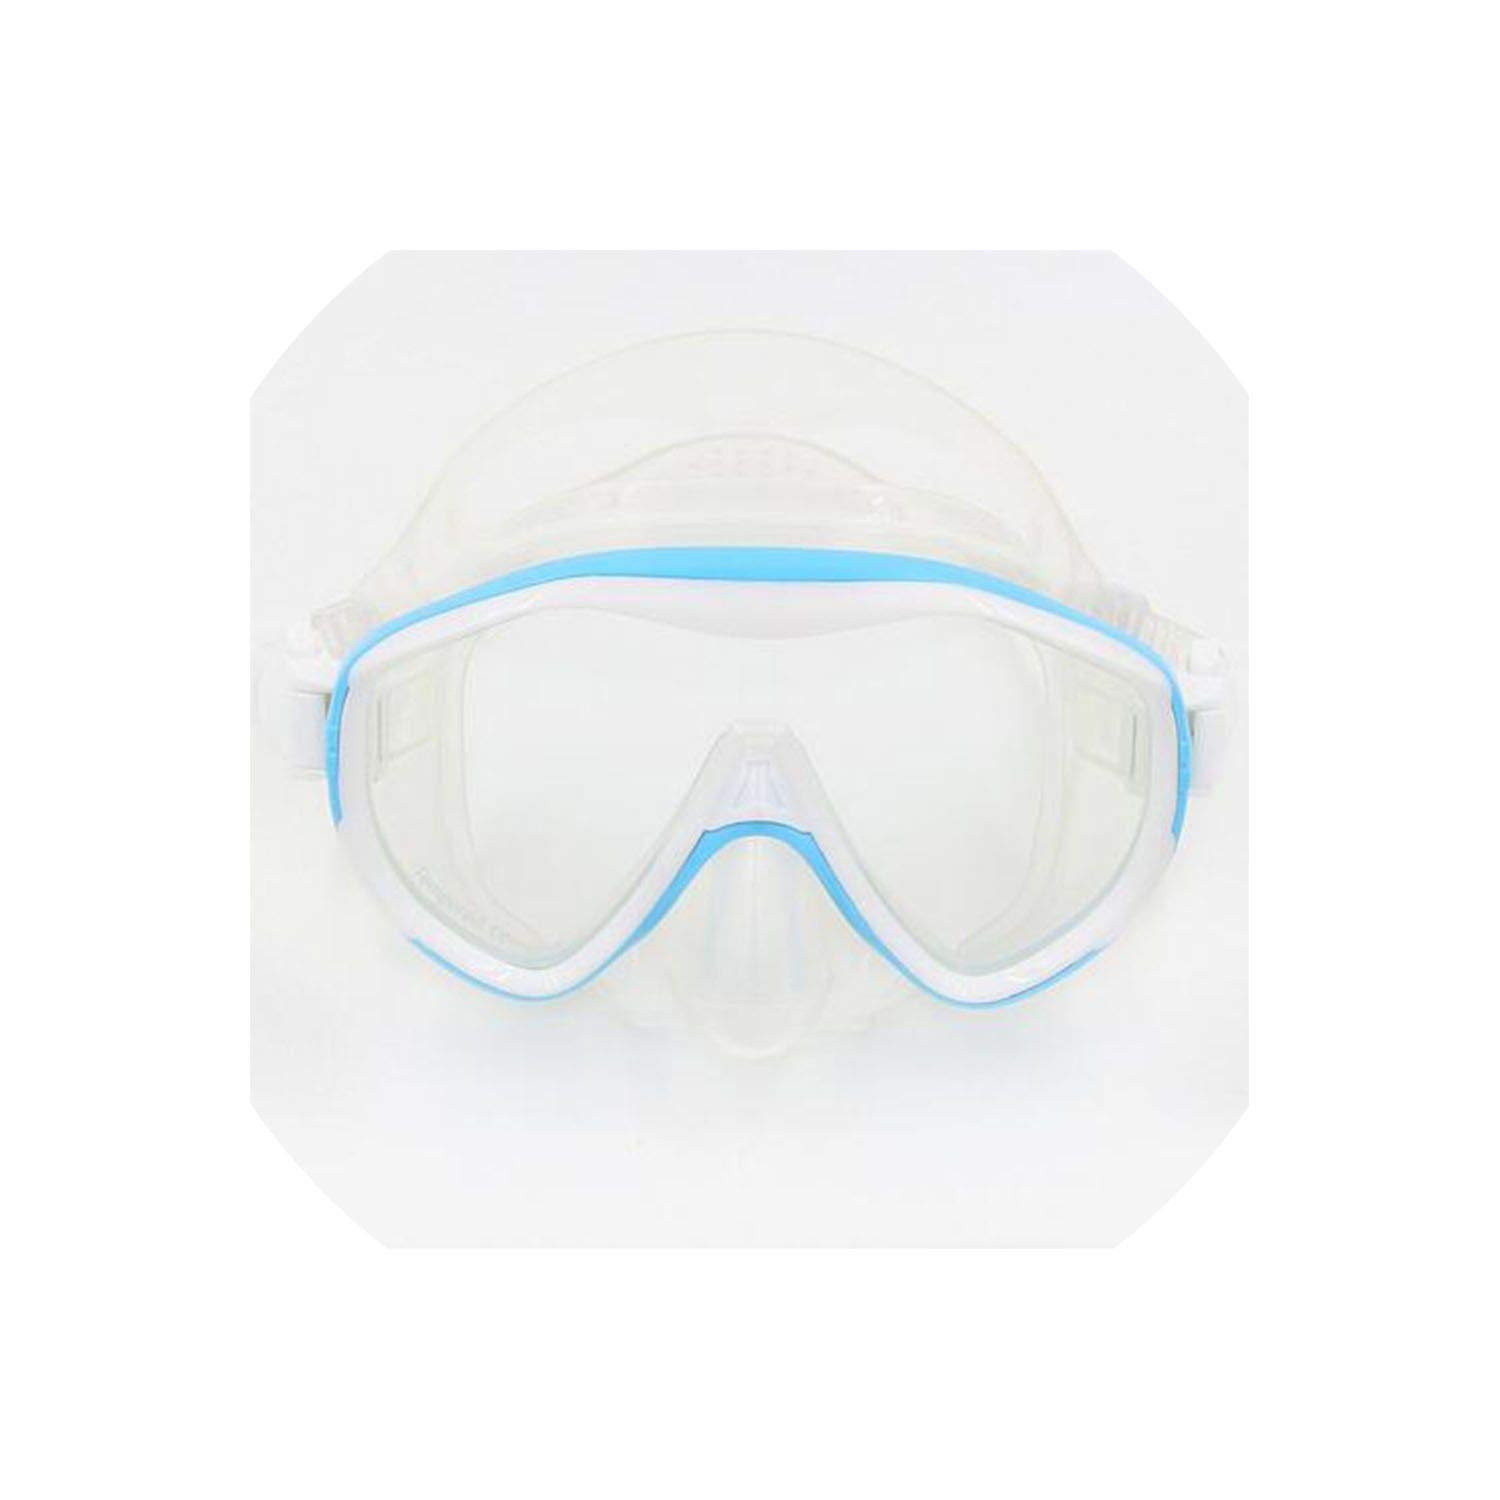 Fly-Town Large Frame Mask Silicone Goggles for Diving Anti-Fog Waterproof Glasses Snorkel mask Scuba Gear Goggles,Light Blue by Fly-Town